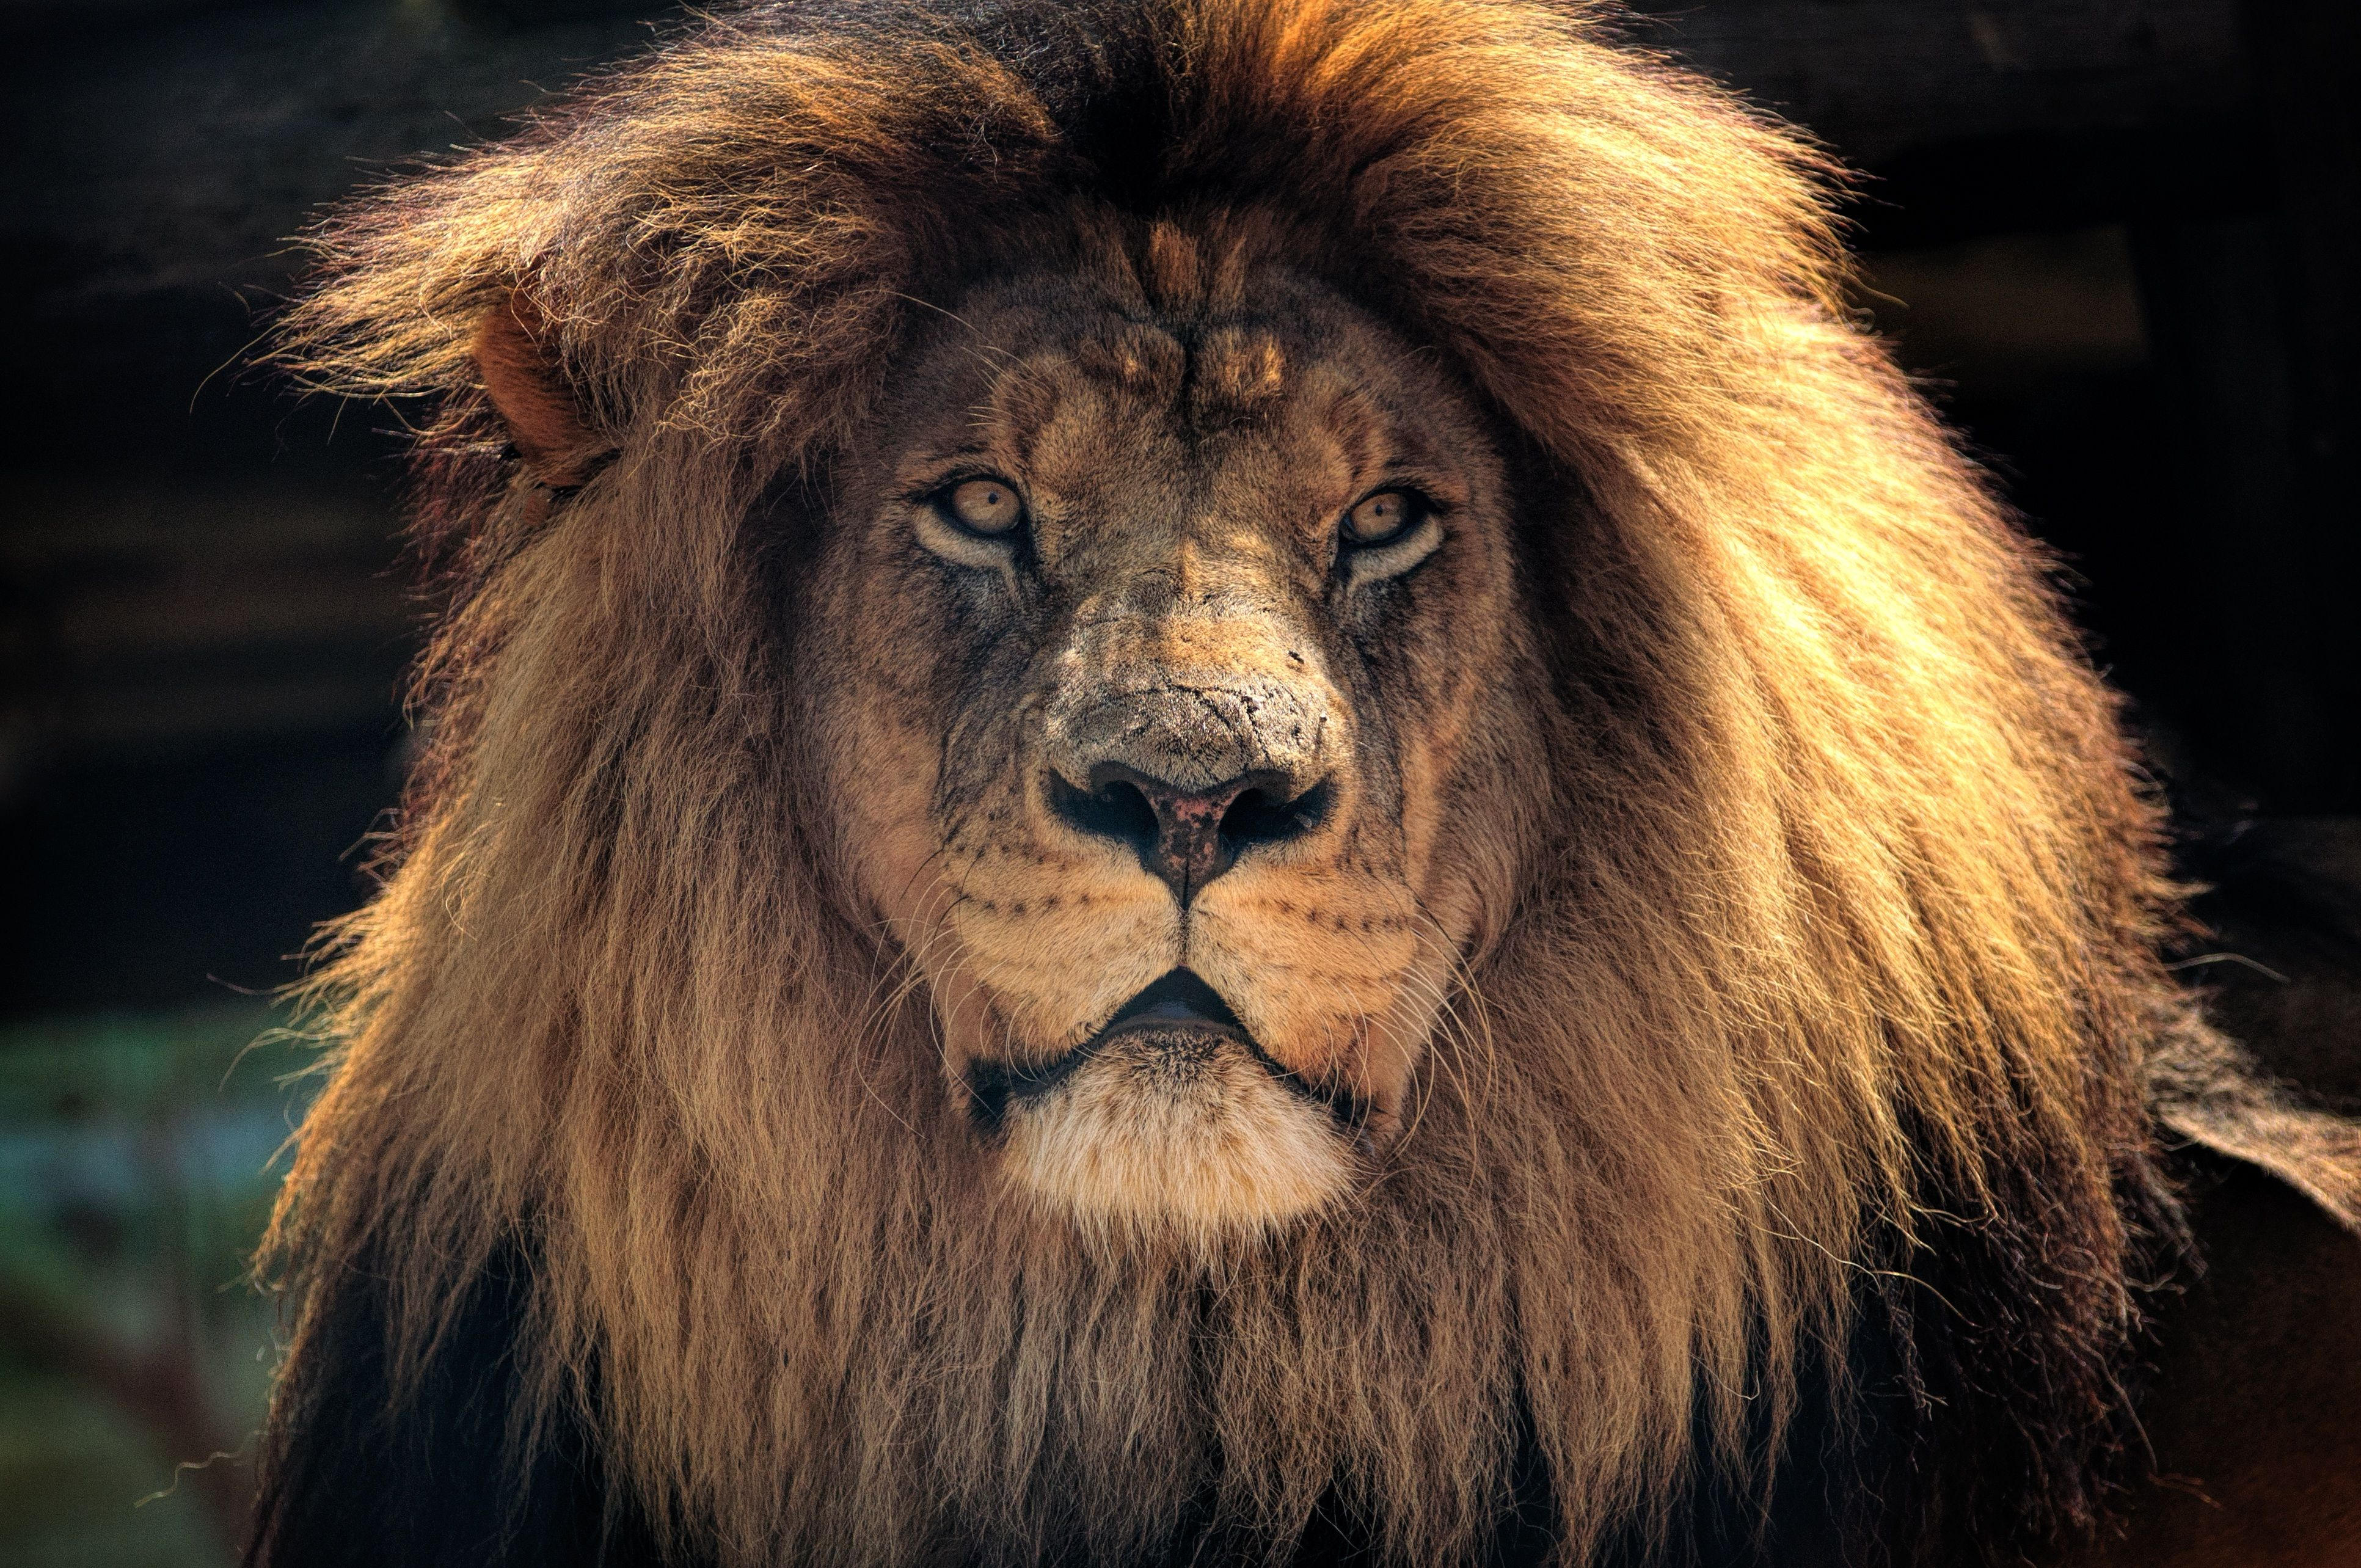 Howling Lion 4K Wallpapers - Top Free Howling Lion 4K ...